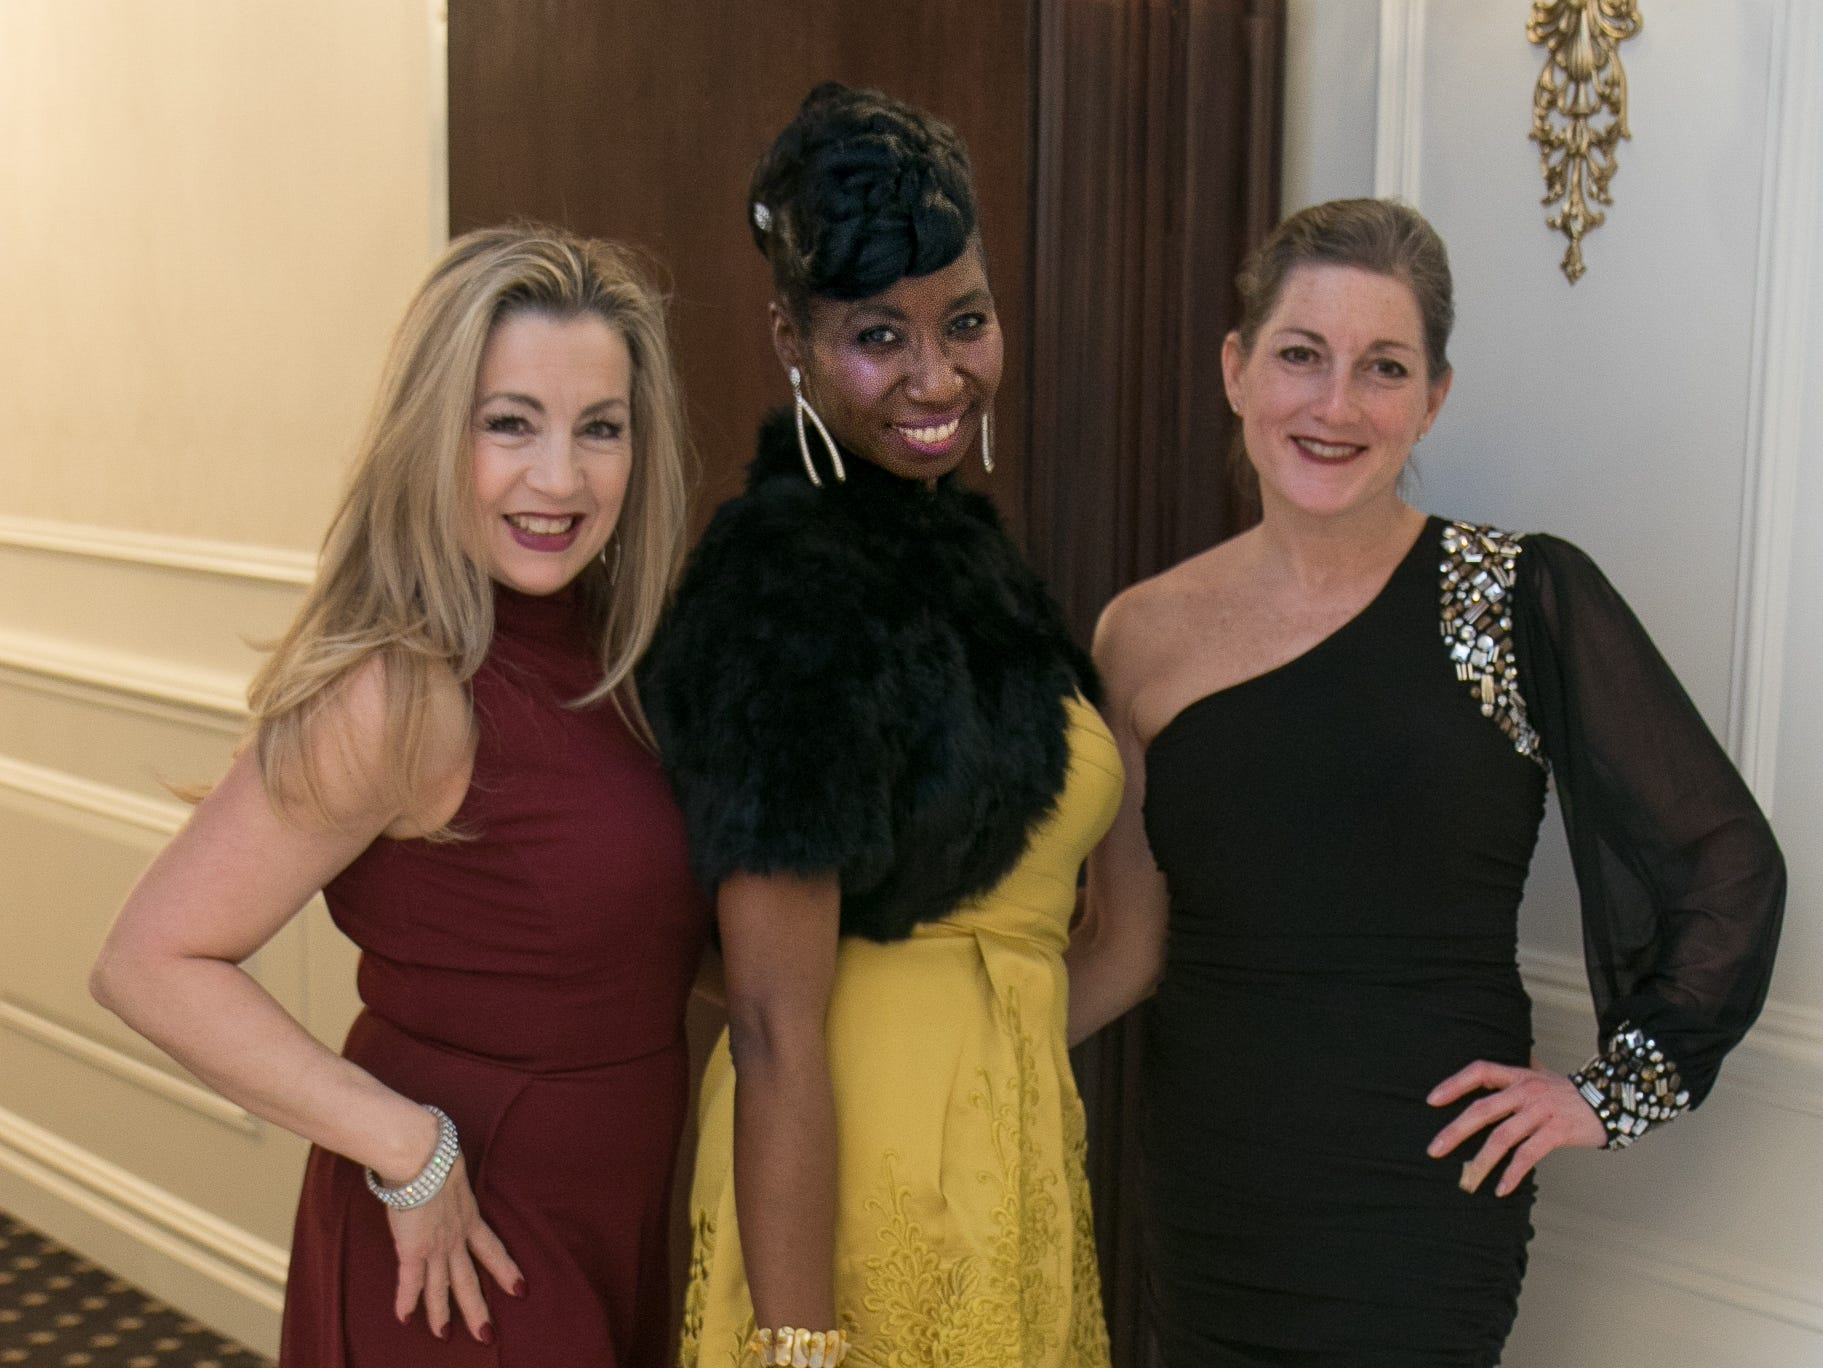 Volunteers- Sandra Introna, Kendra Jones, Marie Costello. Spring Lake Toys Foundation held it's Night on the Town Gala at Macaluso's in Hawthorne. Money raised benefits children with illnesses to assist in all their financial needs. 03/01/2019